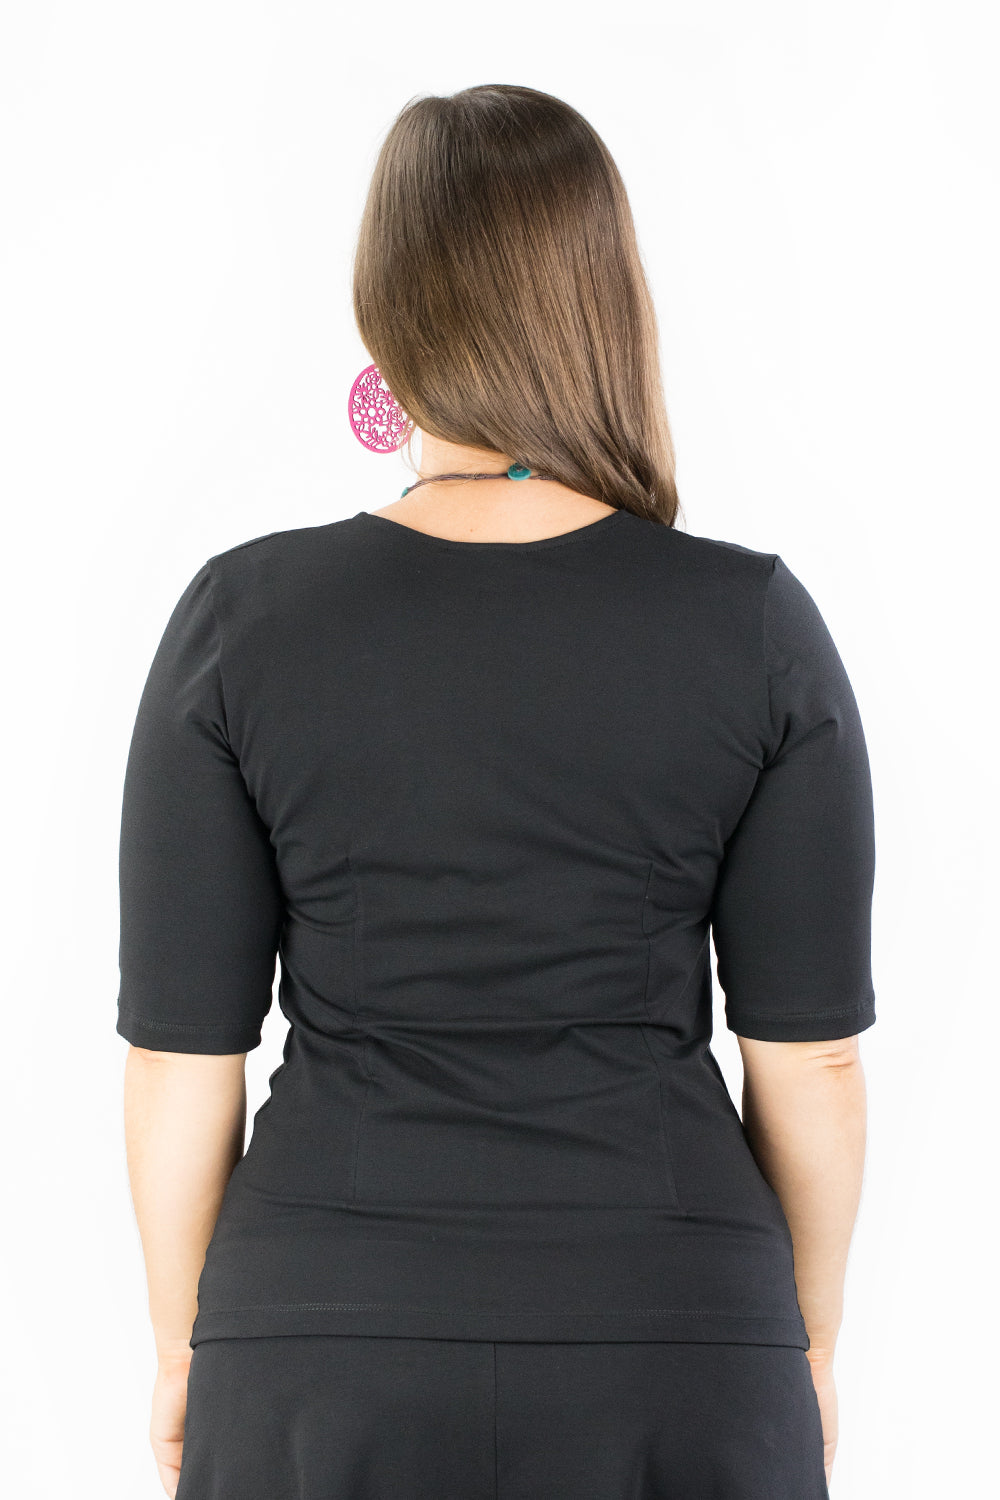 Windowpane Top - Elbow Sleeve - Geisha in Black